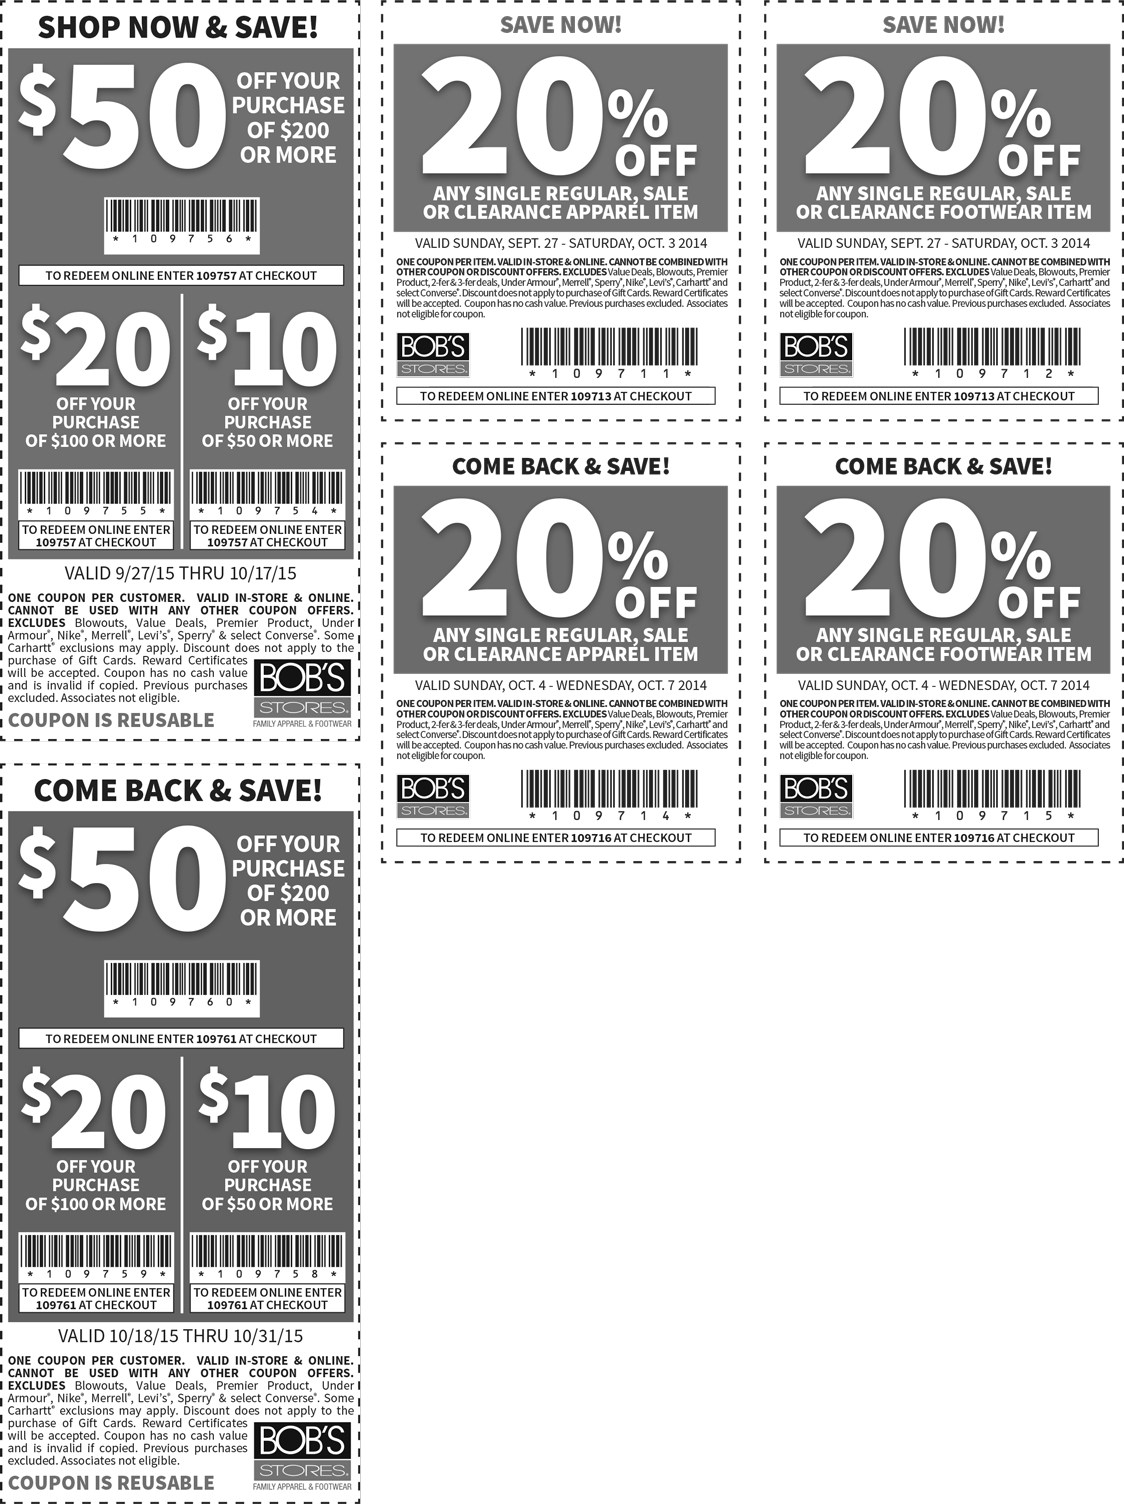 Bobs Stores Coupon February 2017 $10 off $50 & more at Bobs Stores, or online via promo code 109757